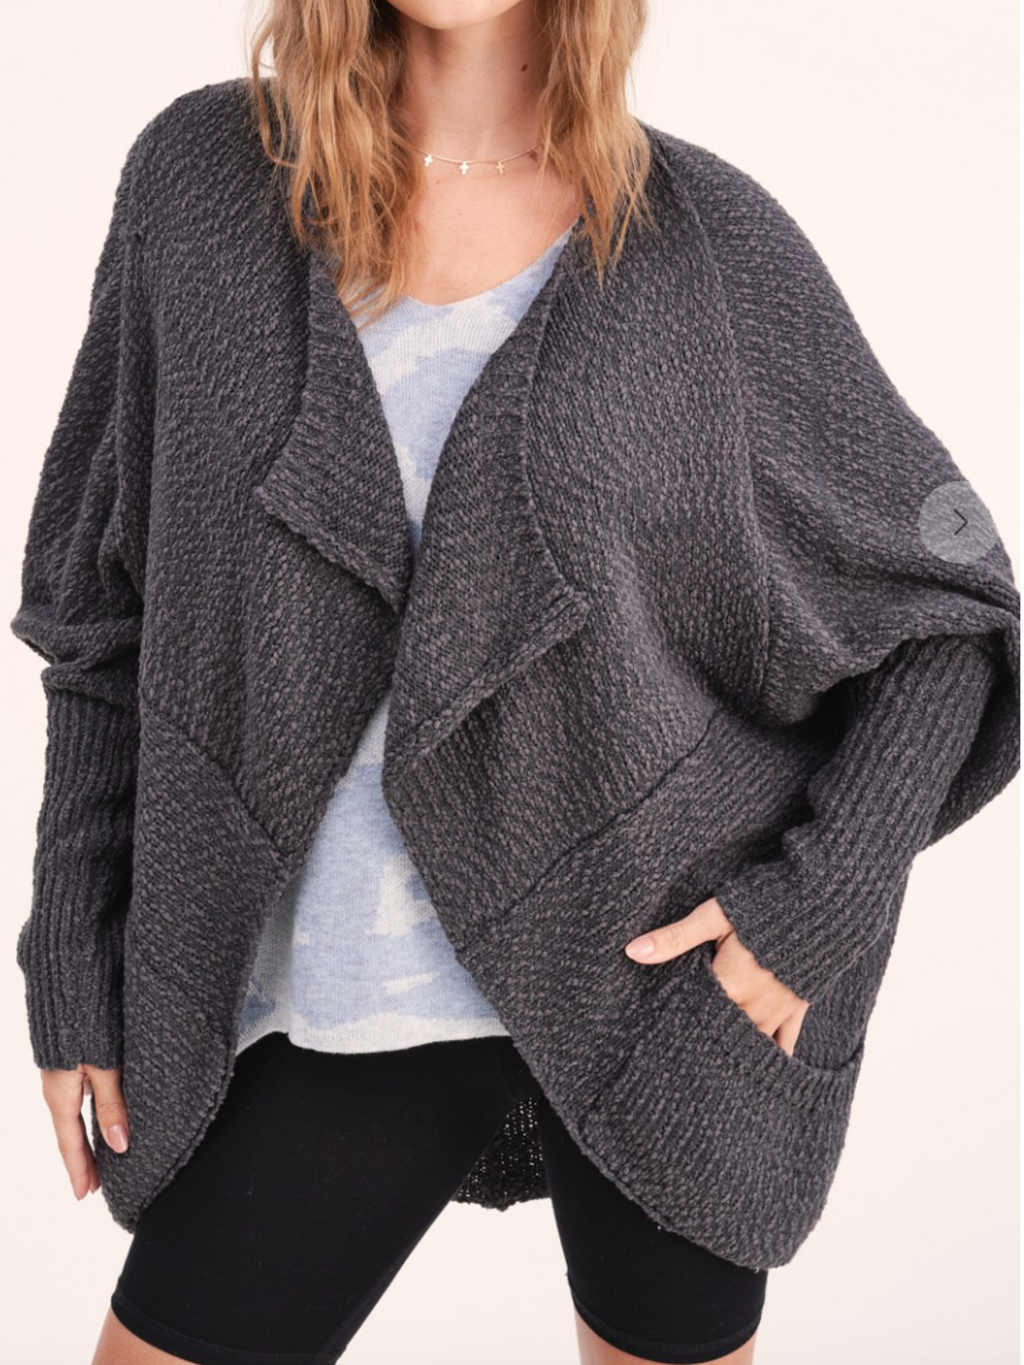 All Wrapped Up Cardigan - Charcoal